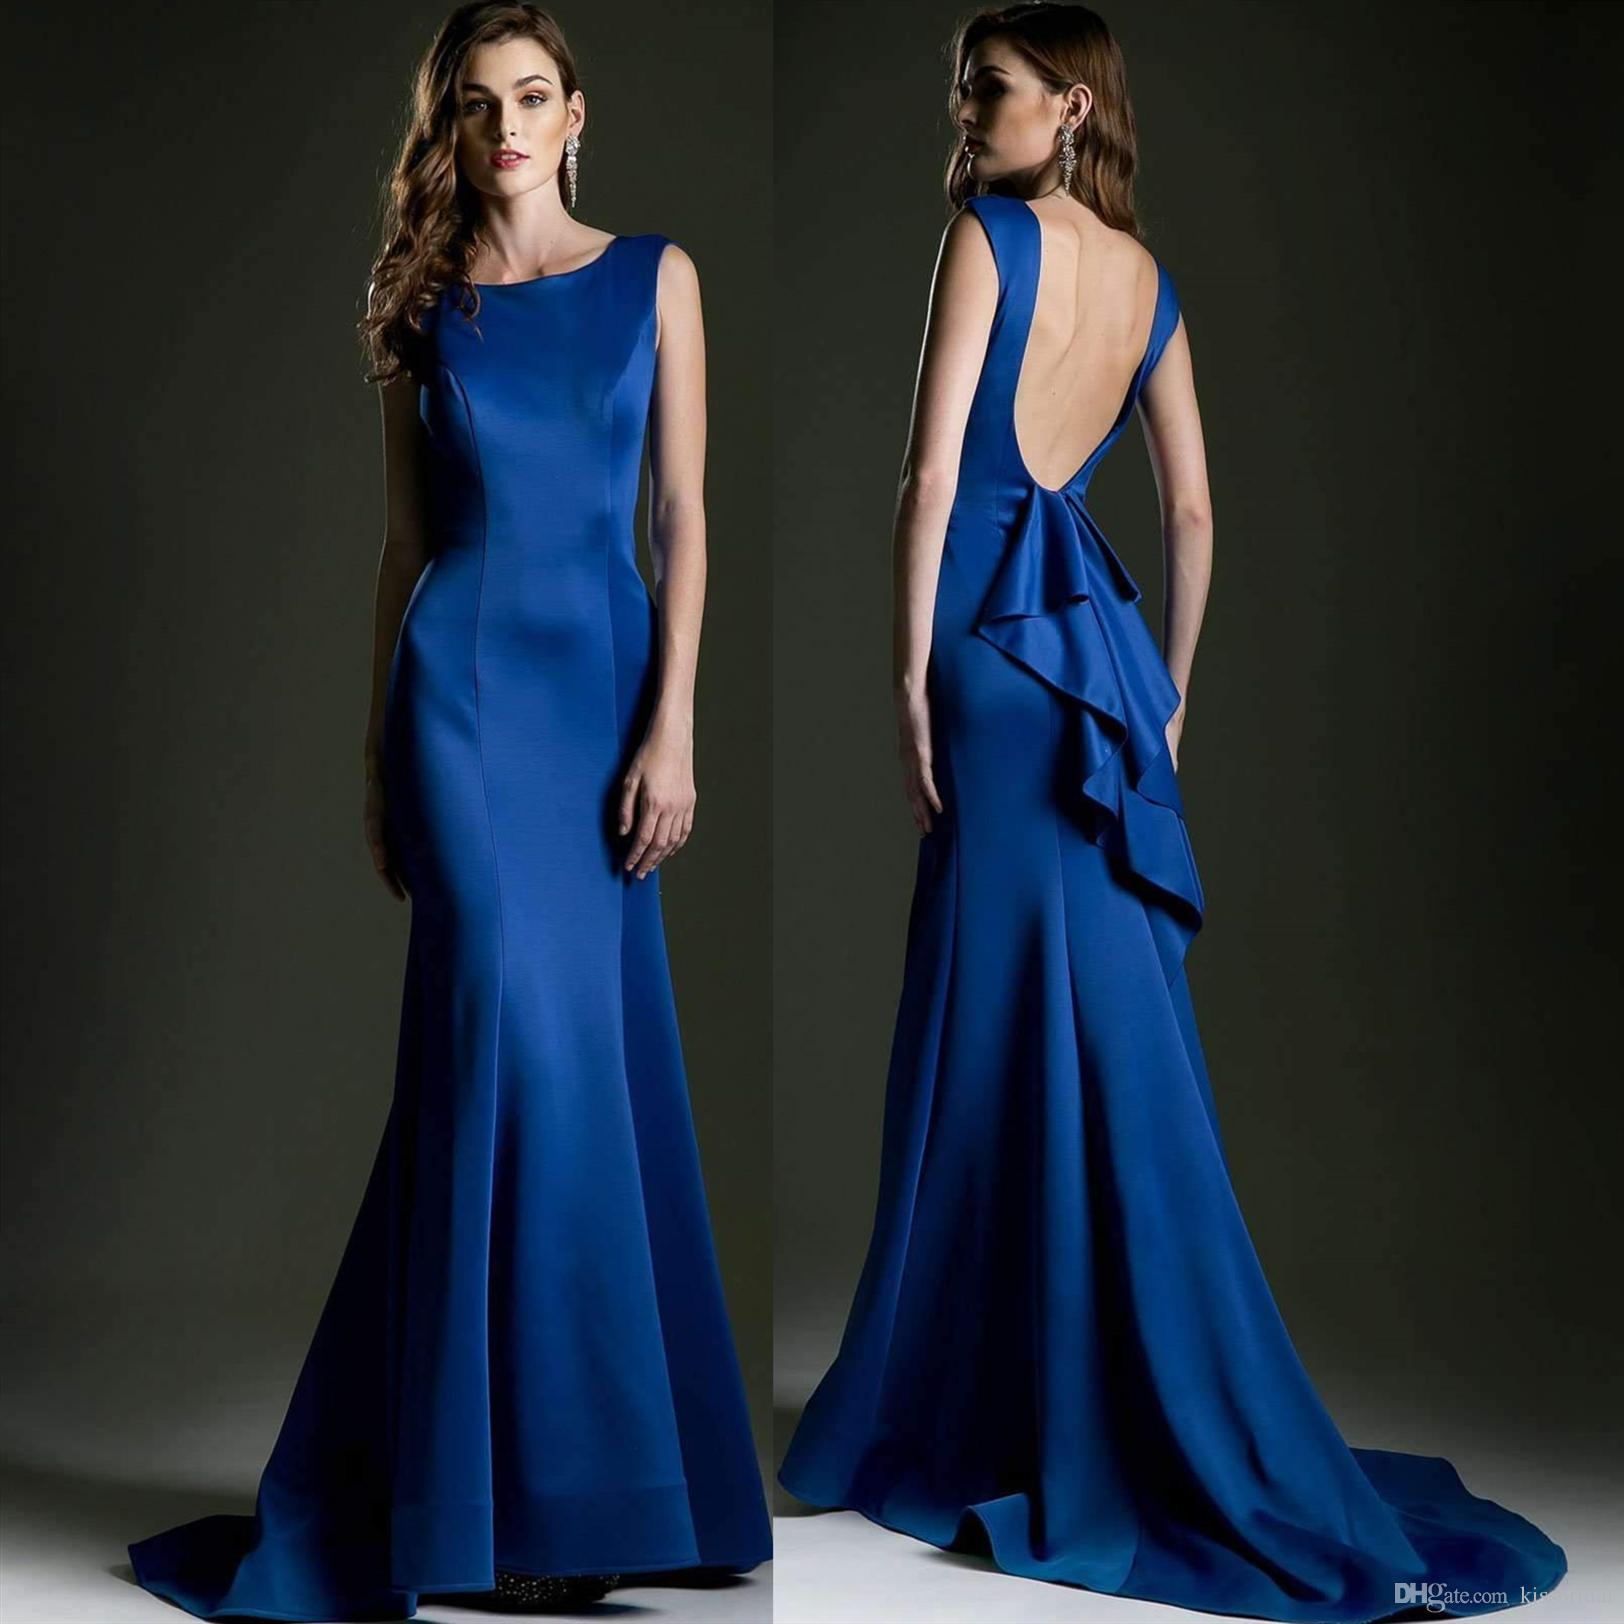 Simple Mermaid Long Prom Dresses With Open Back 2019 Sexy Scoop Neck Formal  Evening Gowns Sweet 16 Dress Women Elegant Cocktail Party Gown  Whatchamacallit ... 7202021ab2f9